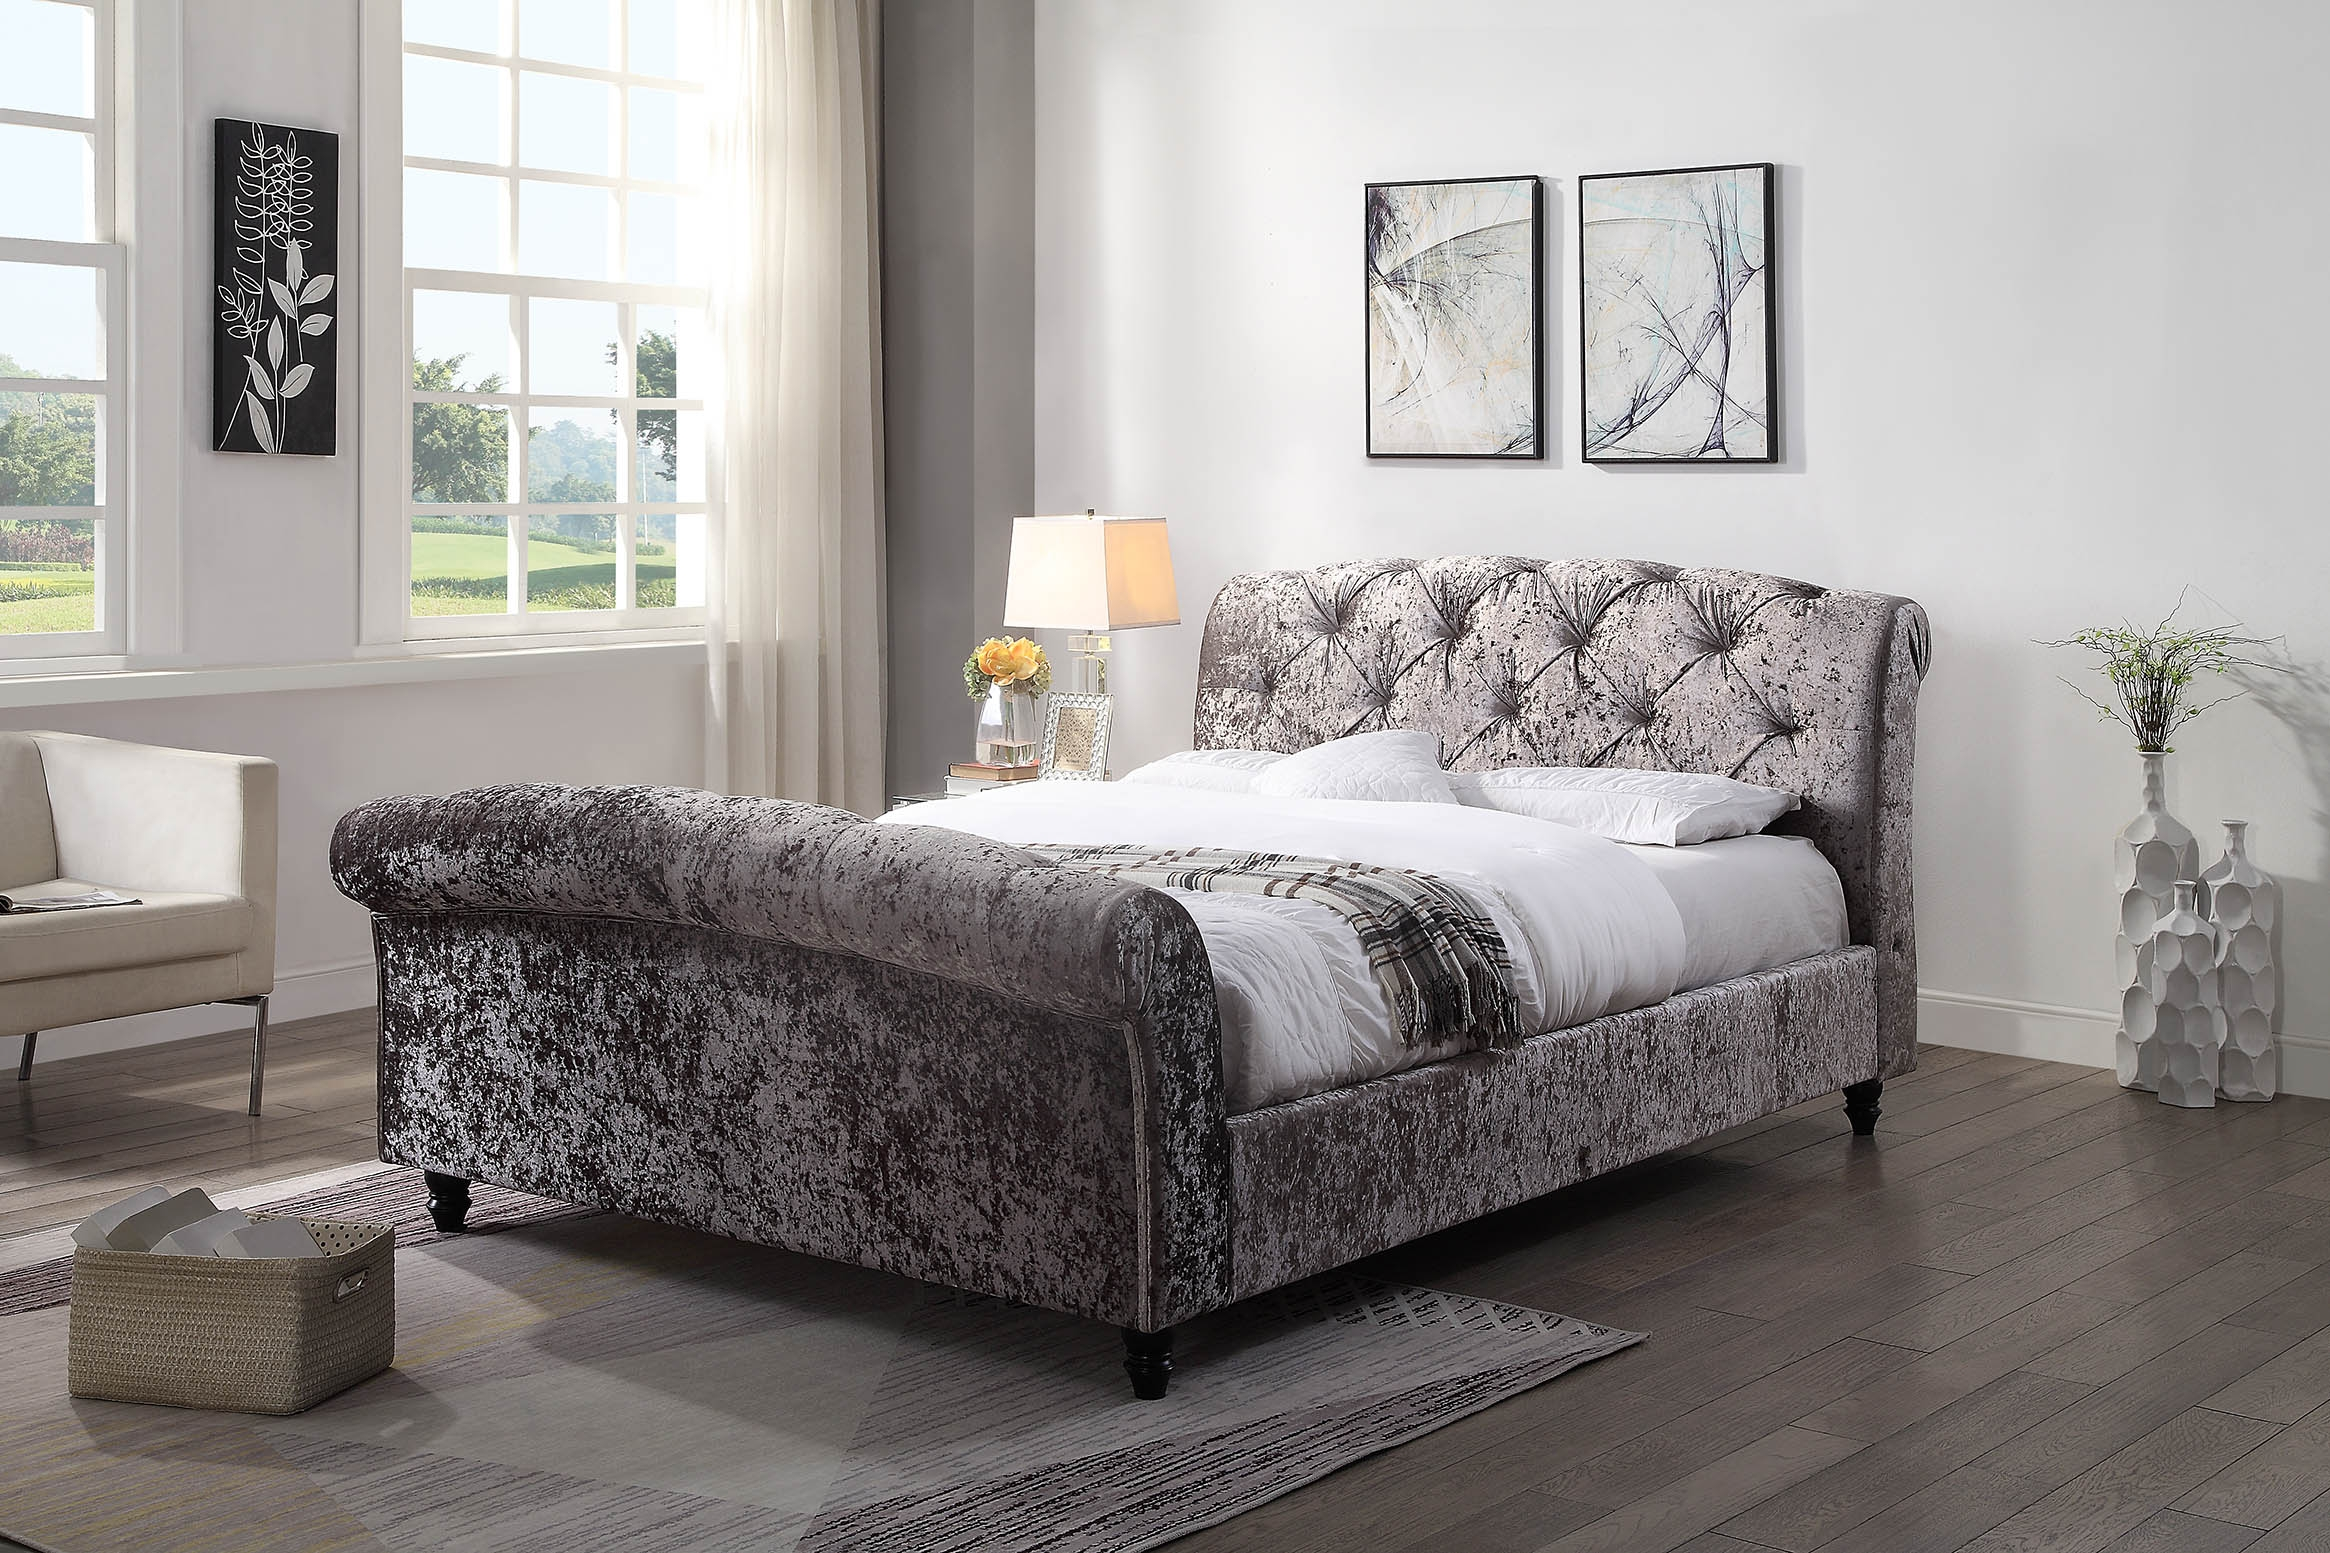 Balmoral Queen Upholstered Sleigh Bed Opulent Glitz Pewter Silver Fabric